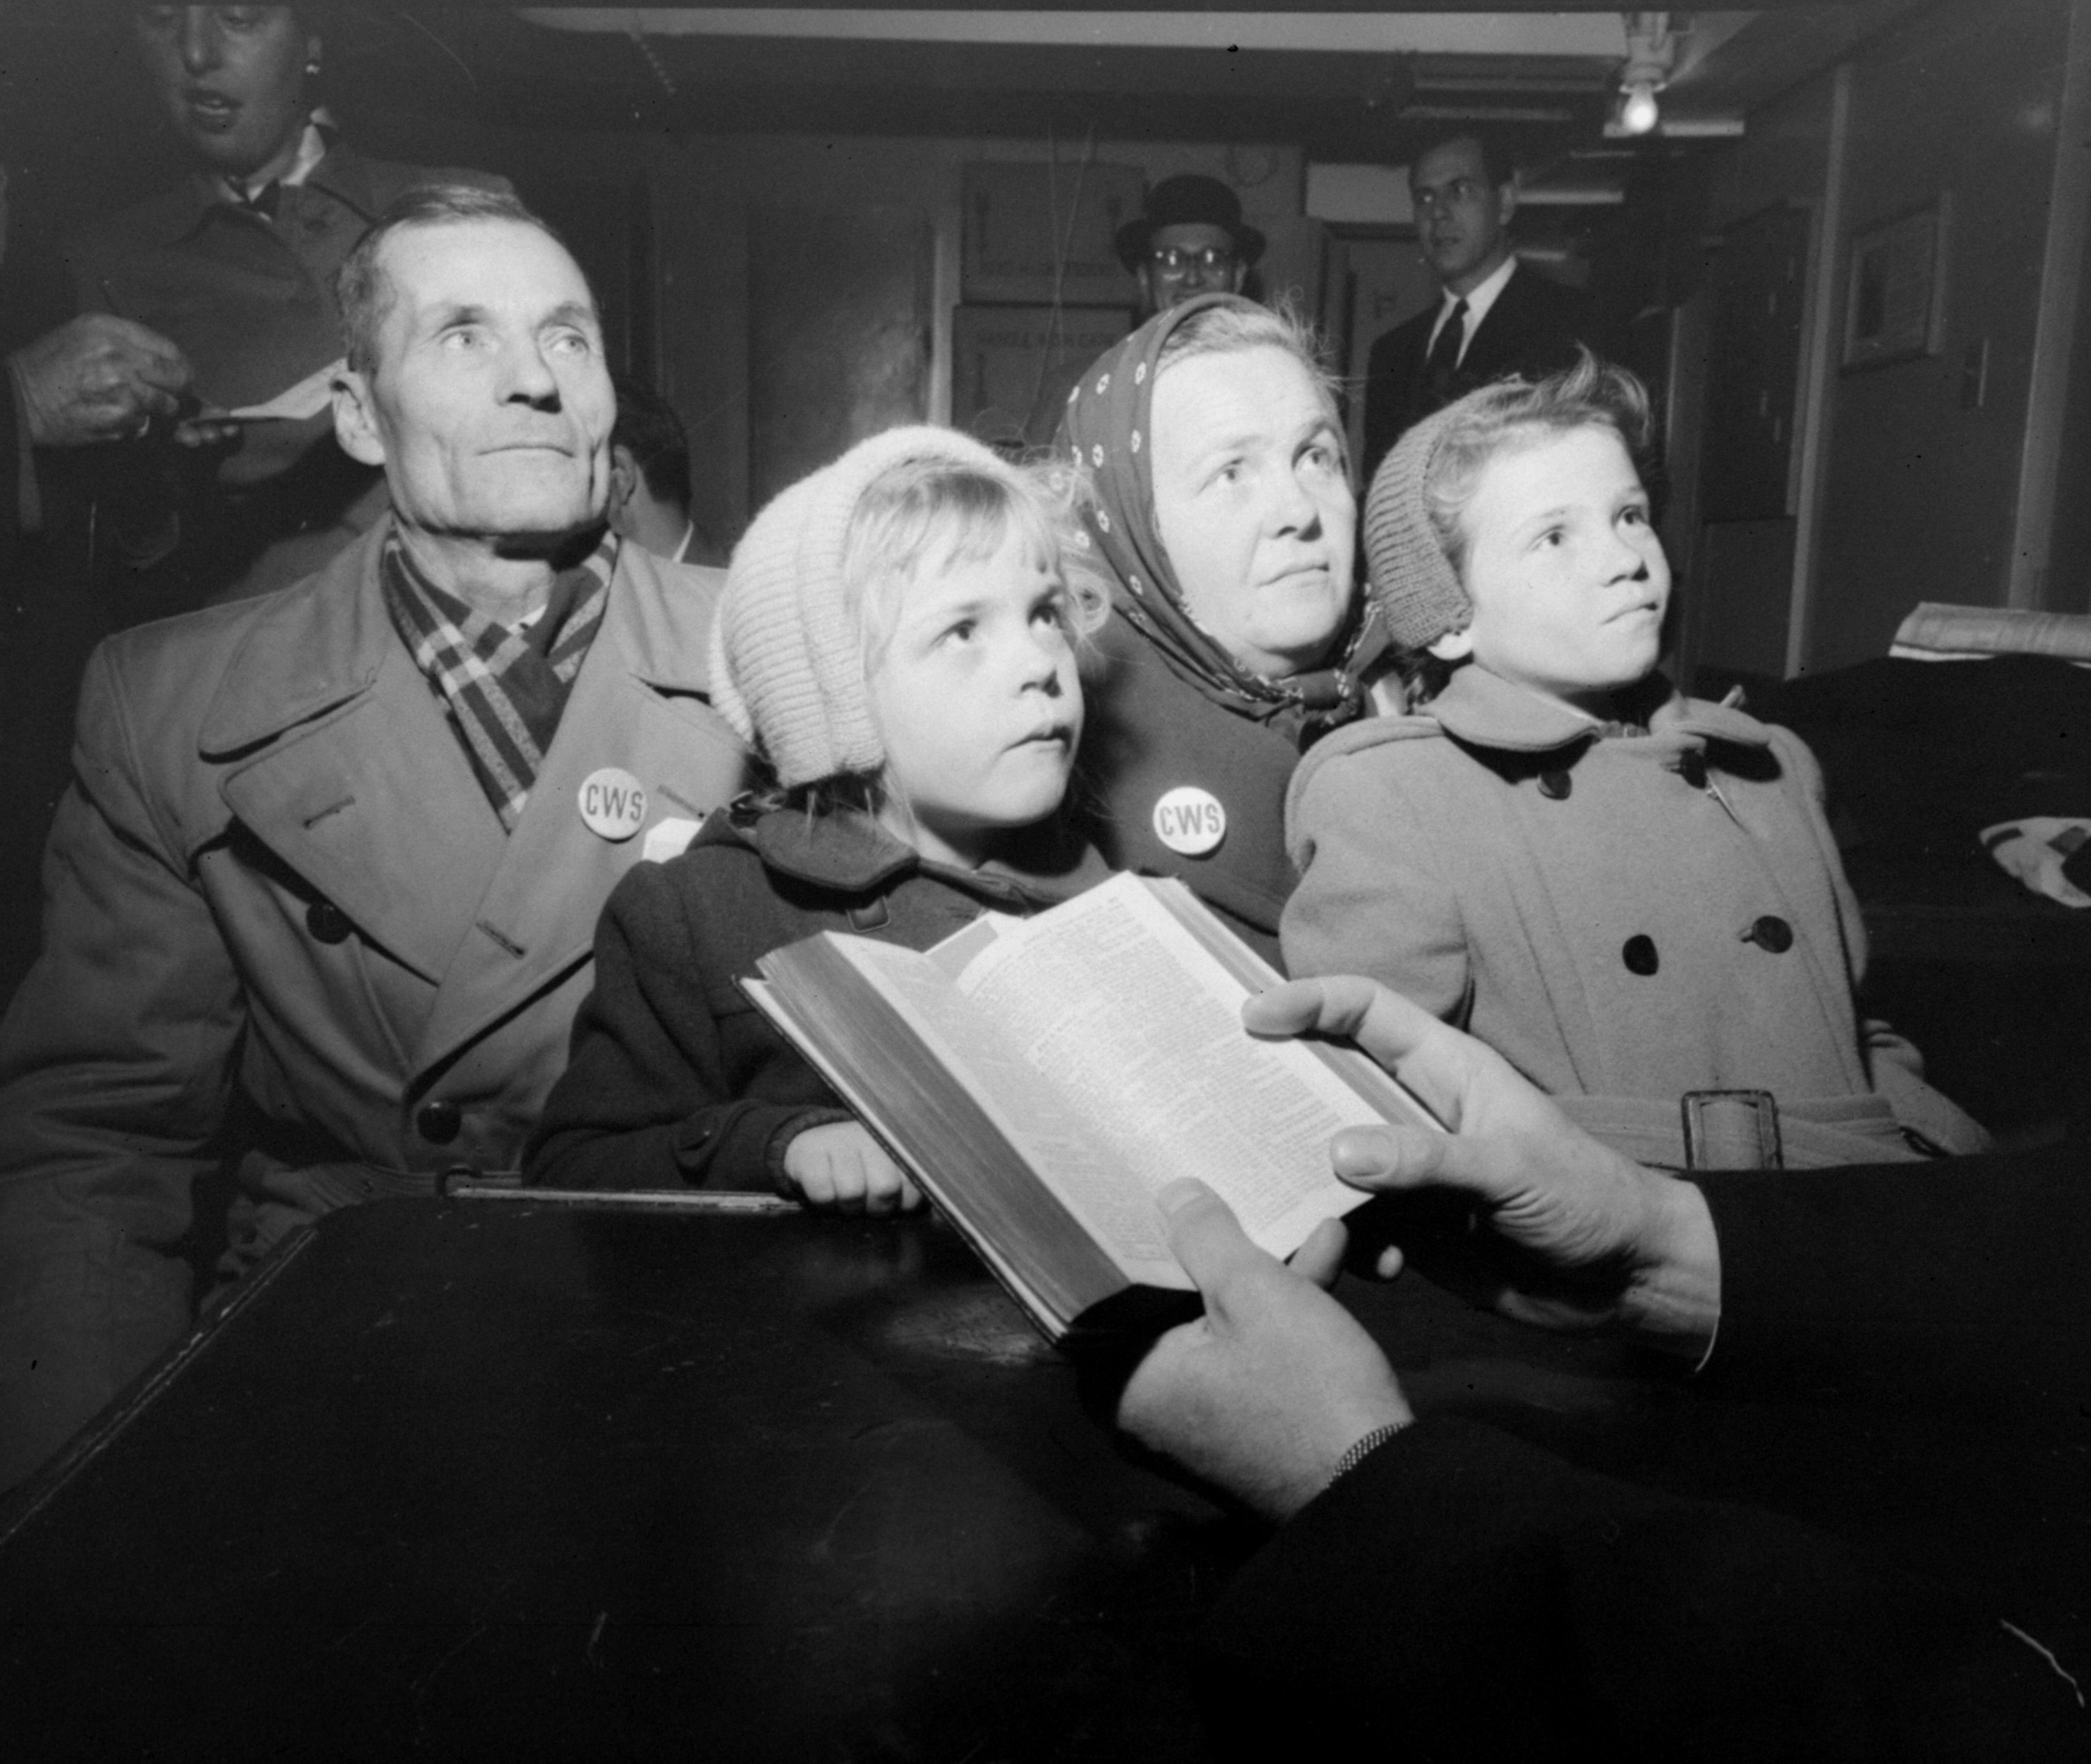 FILE - Kusma Kandaurow, 61, and his wife, Sofie, 41, and their children, Hanna, left, front, 9, and Sonja, 5, are in deep thought as a clergyman reads scripture following their arrival in New York City, Dec. 16, 1955, with other refugees aboard the N...